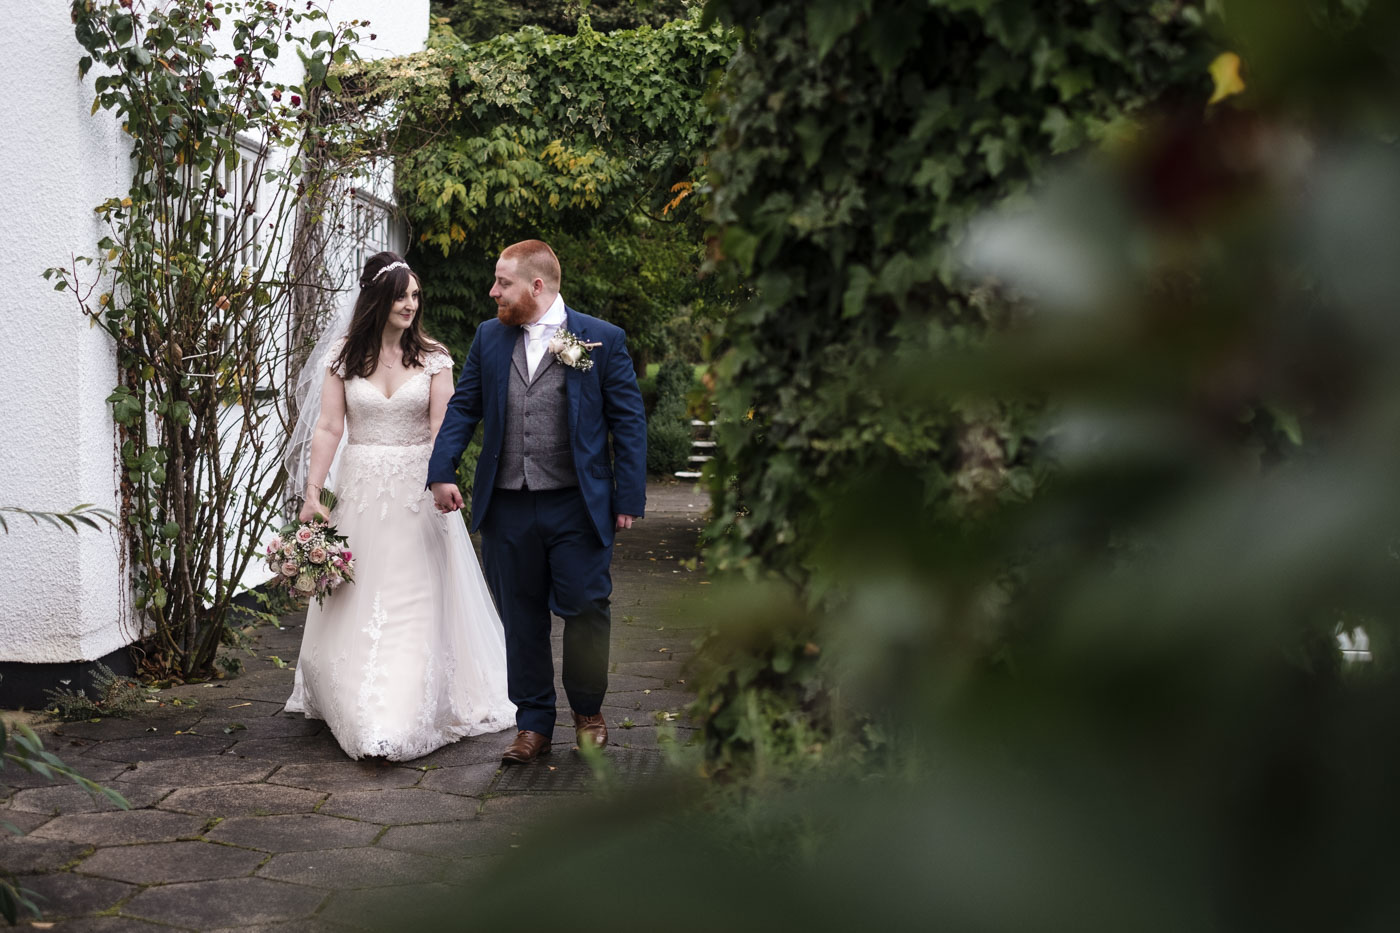 unposed couple portraits in the gardens of country house venue